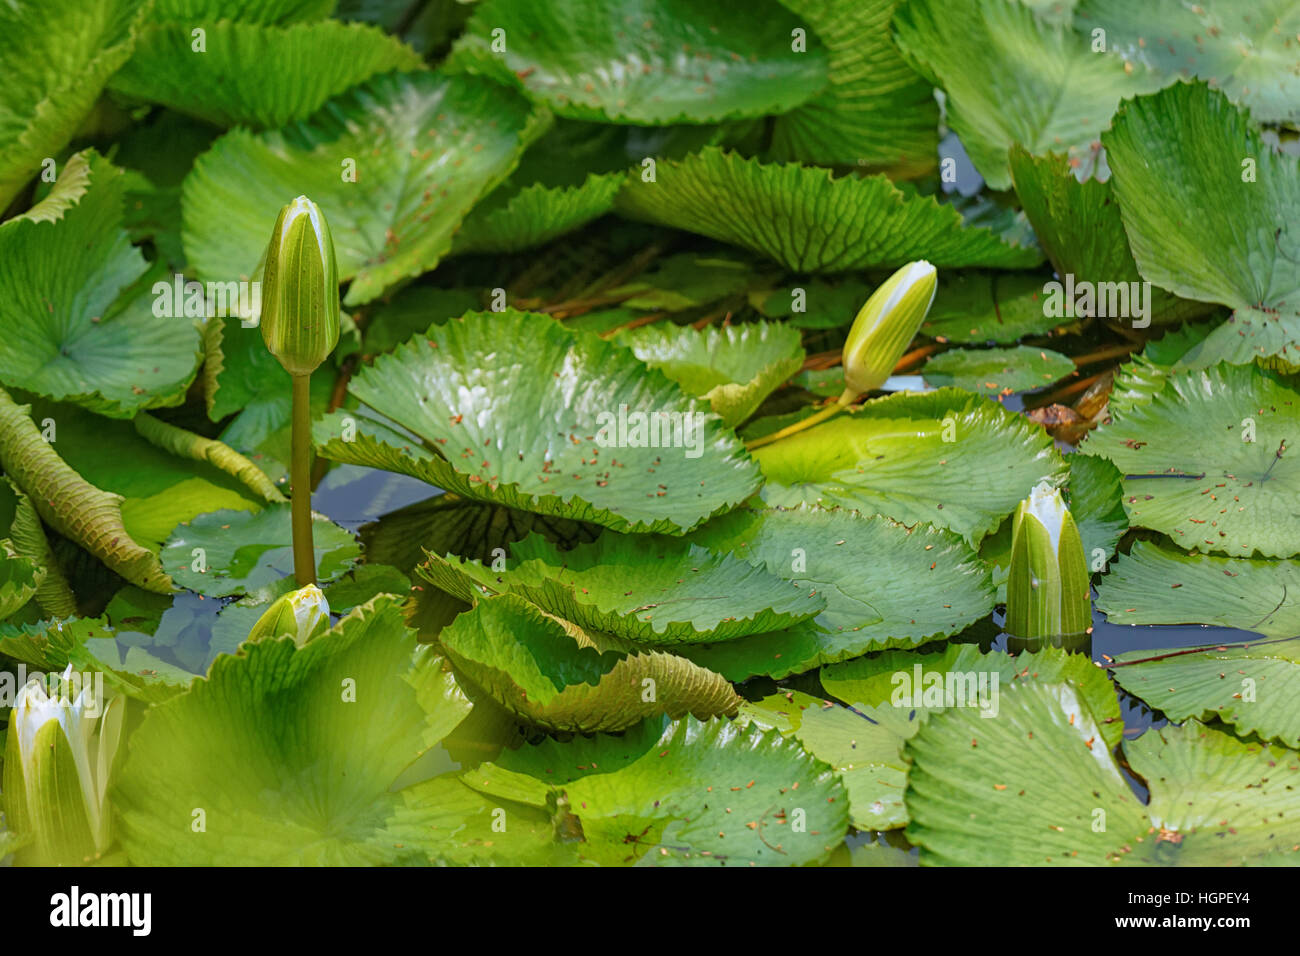 Unblown Flowers Of Lotus In A Thicket Of Foliage Stock Photo